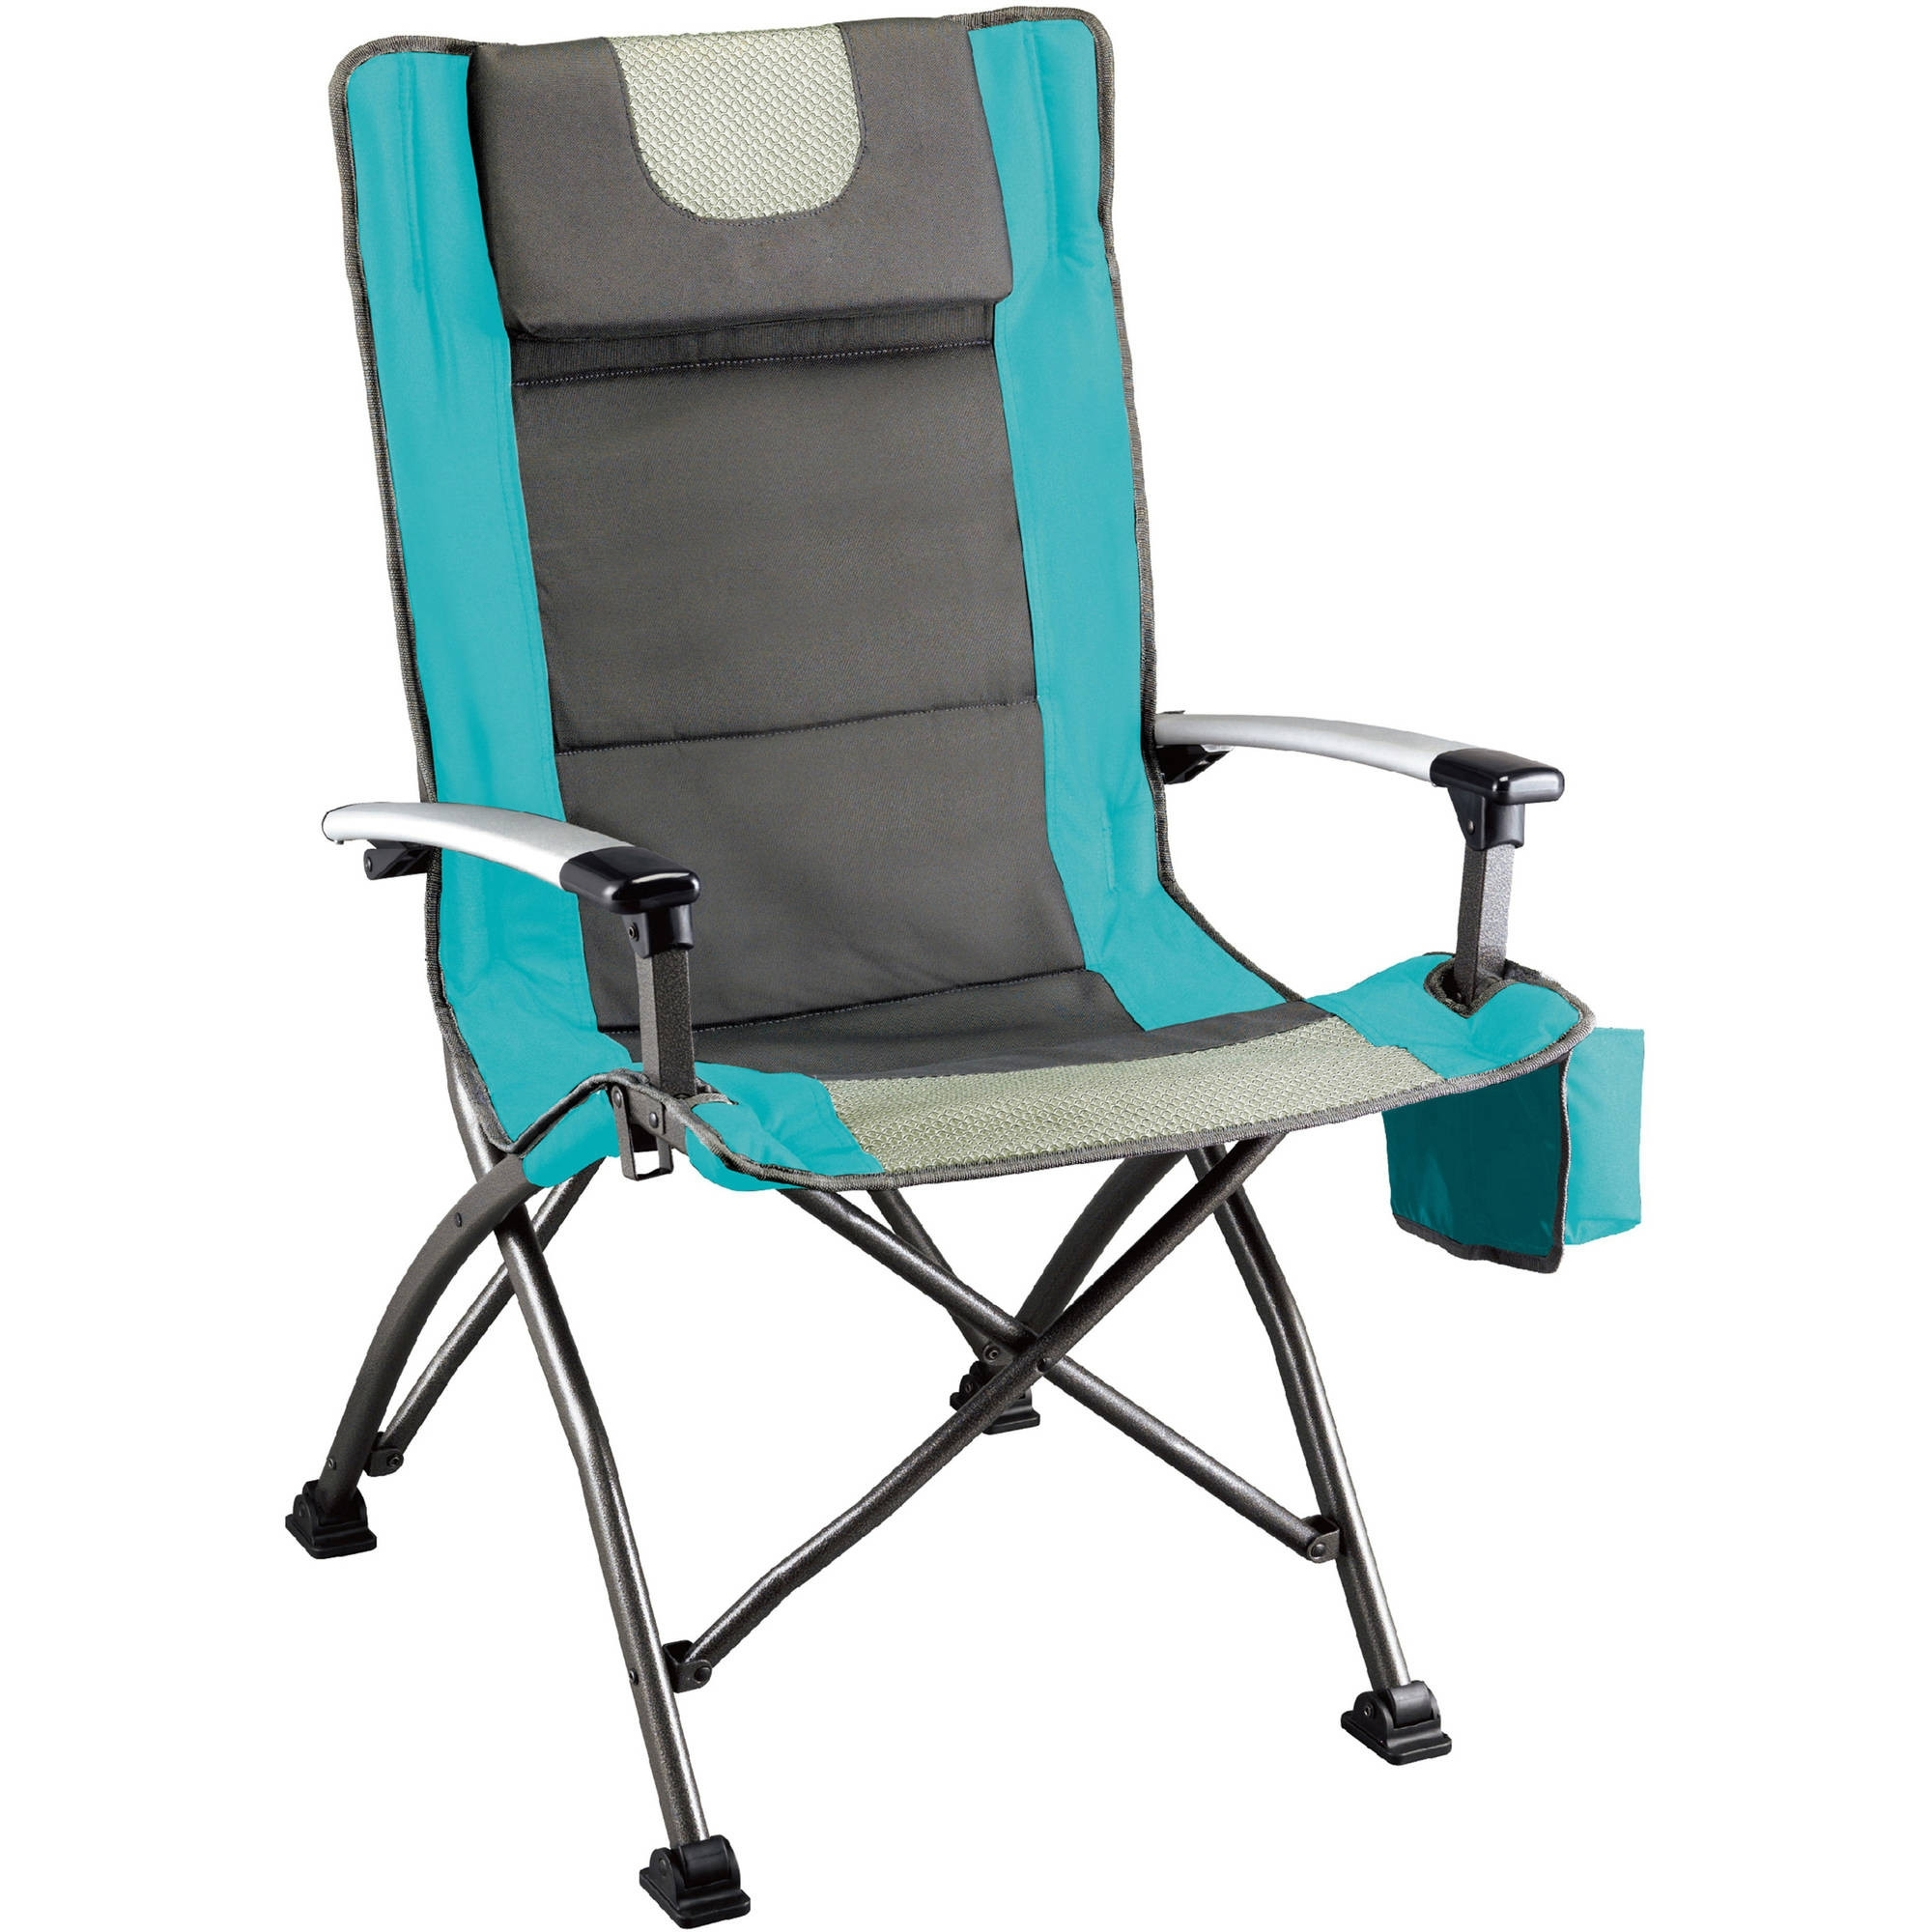 Most Recent Heavy Duty Outdoor Chaise Lounge Chairs Intended For Lounge Chair : Chairs Patio Chairs For Large People Lounge Chairs (View 12 of 15)